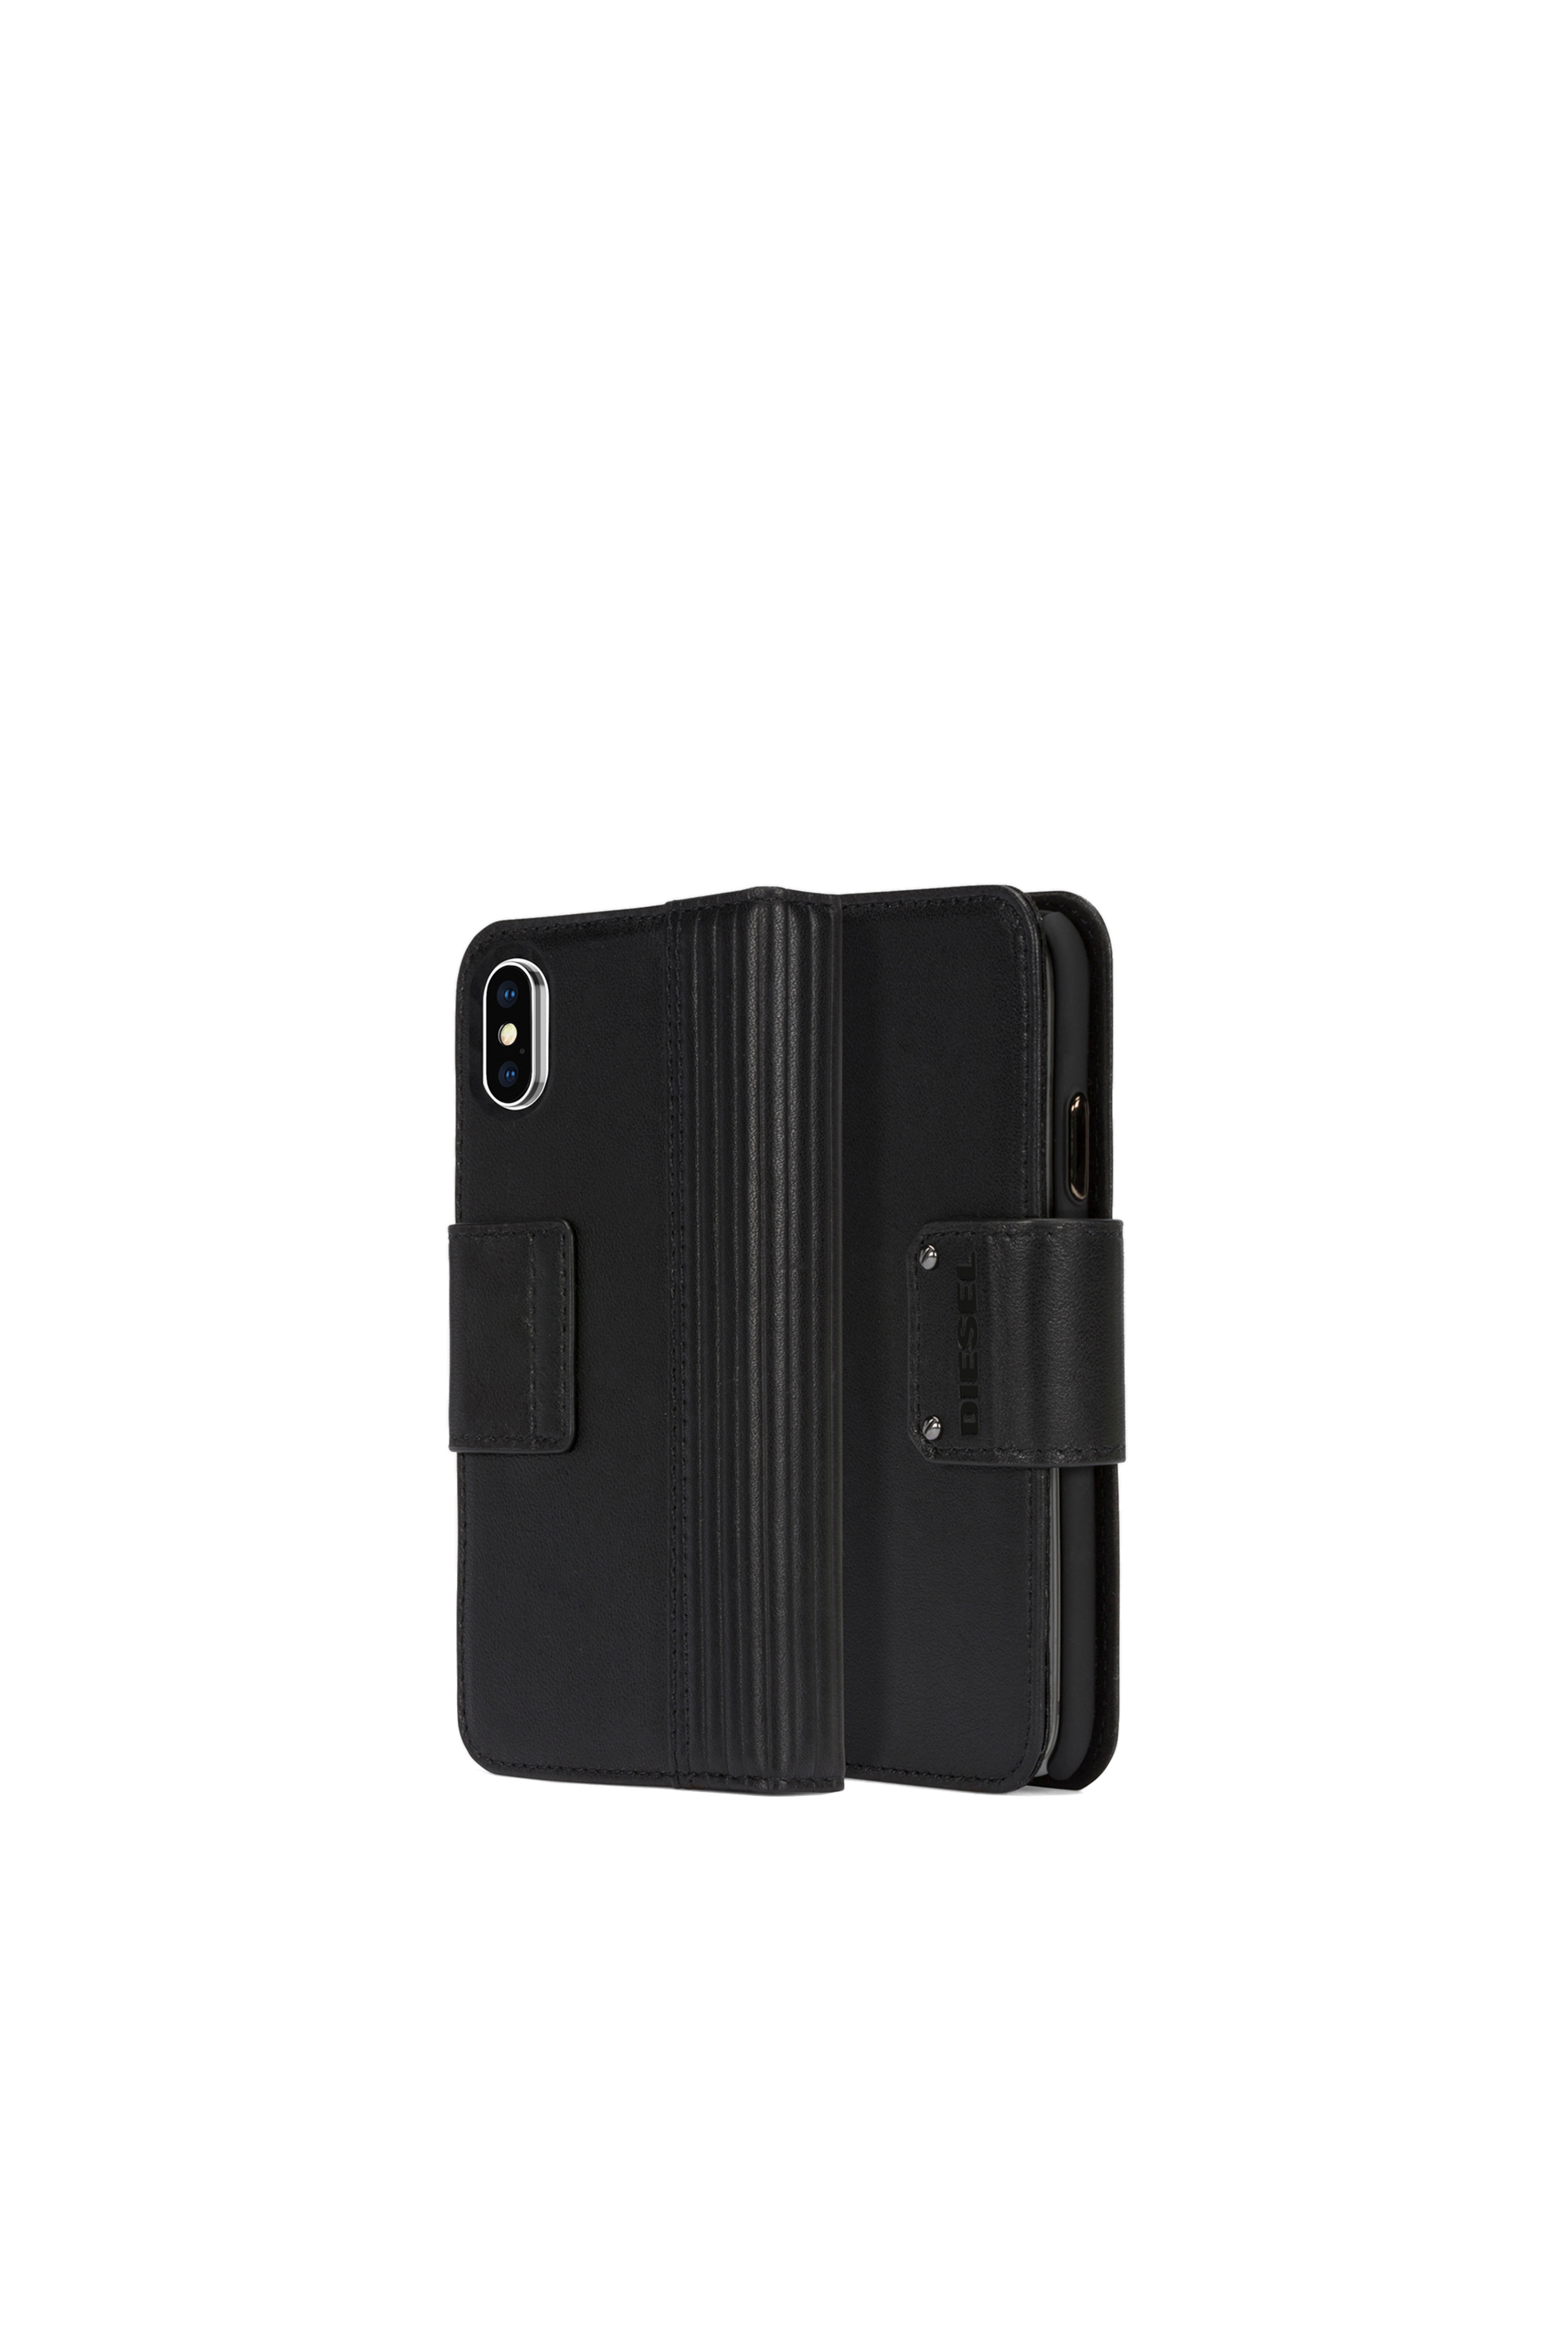 Diesel - BLACK LINED LEATHER IPHONE X FOLIO,  - Flip covers - Image 1